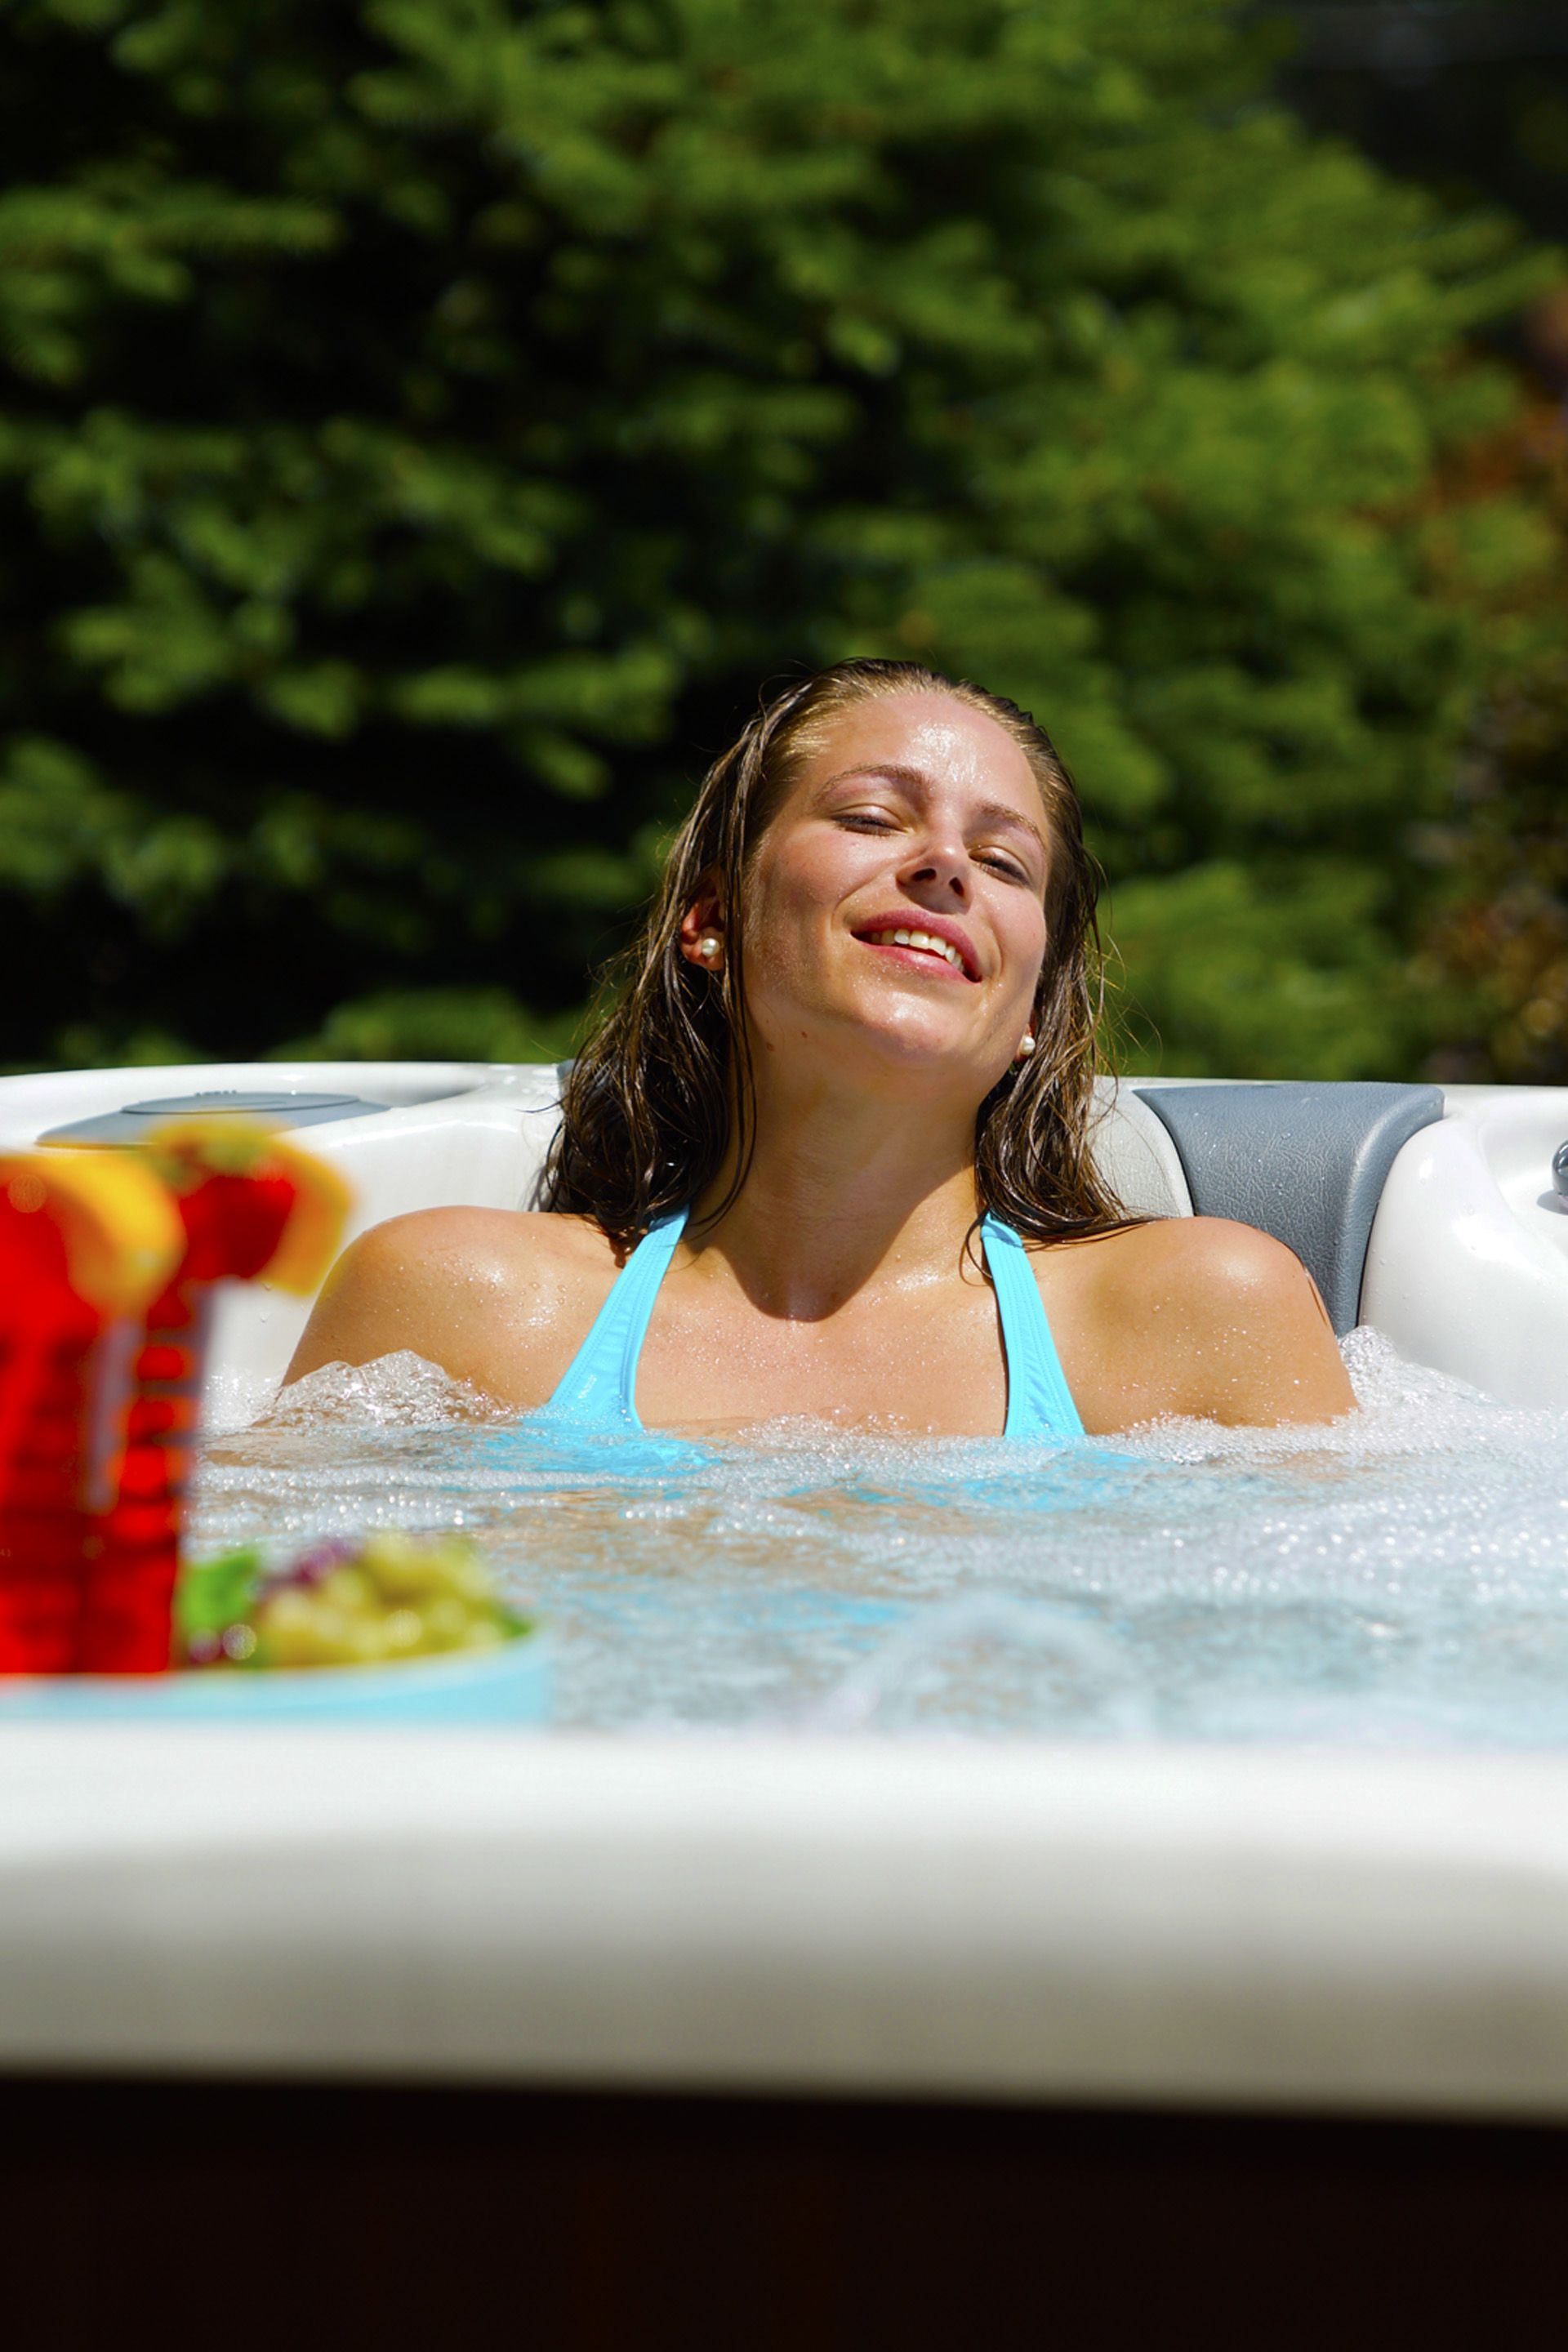 Relaxing in a lazboy spa lazboy spas pinterest spa and relaxing in a lazboy spa publicscrutiny Choice Image